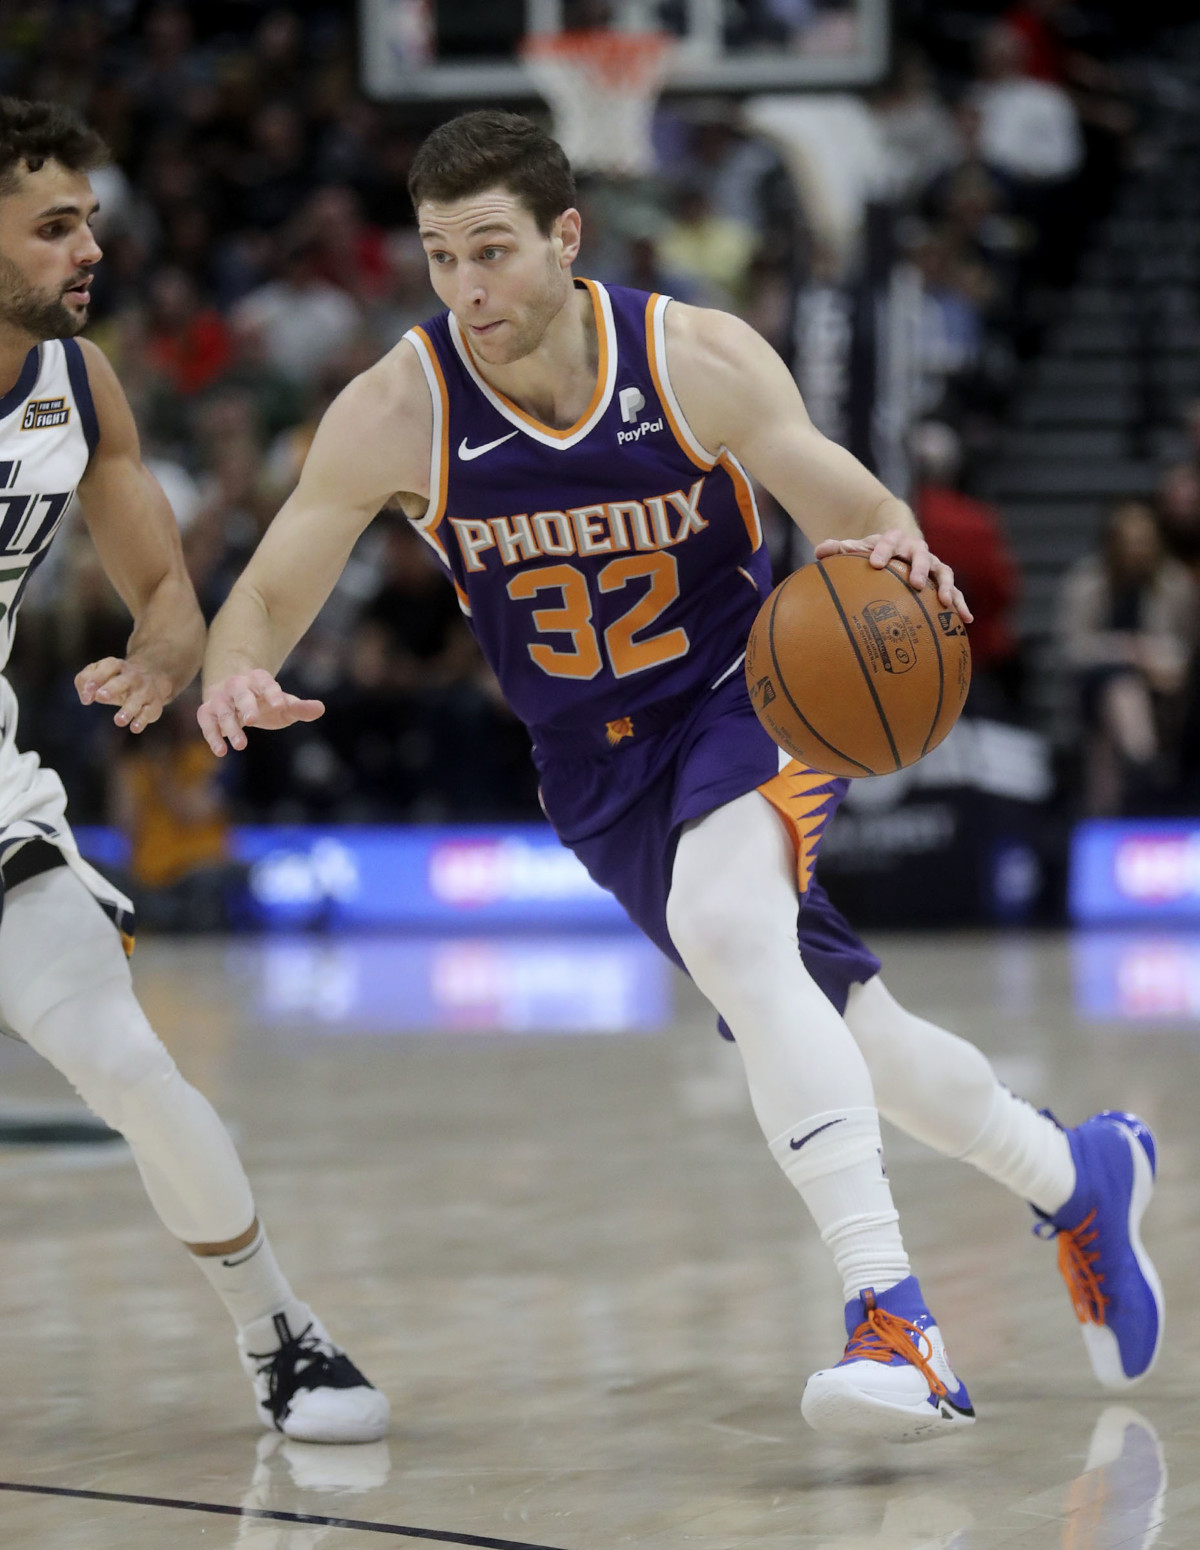 b281c1978f5 Phoenix Suns guard Jimmer Fredette (32) dribbles around Utah Jazz guard  Raul Neto (25) during an NBA basketball game at the Vivint Smart Home Arena  in Salt ...